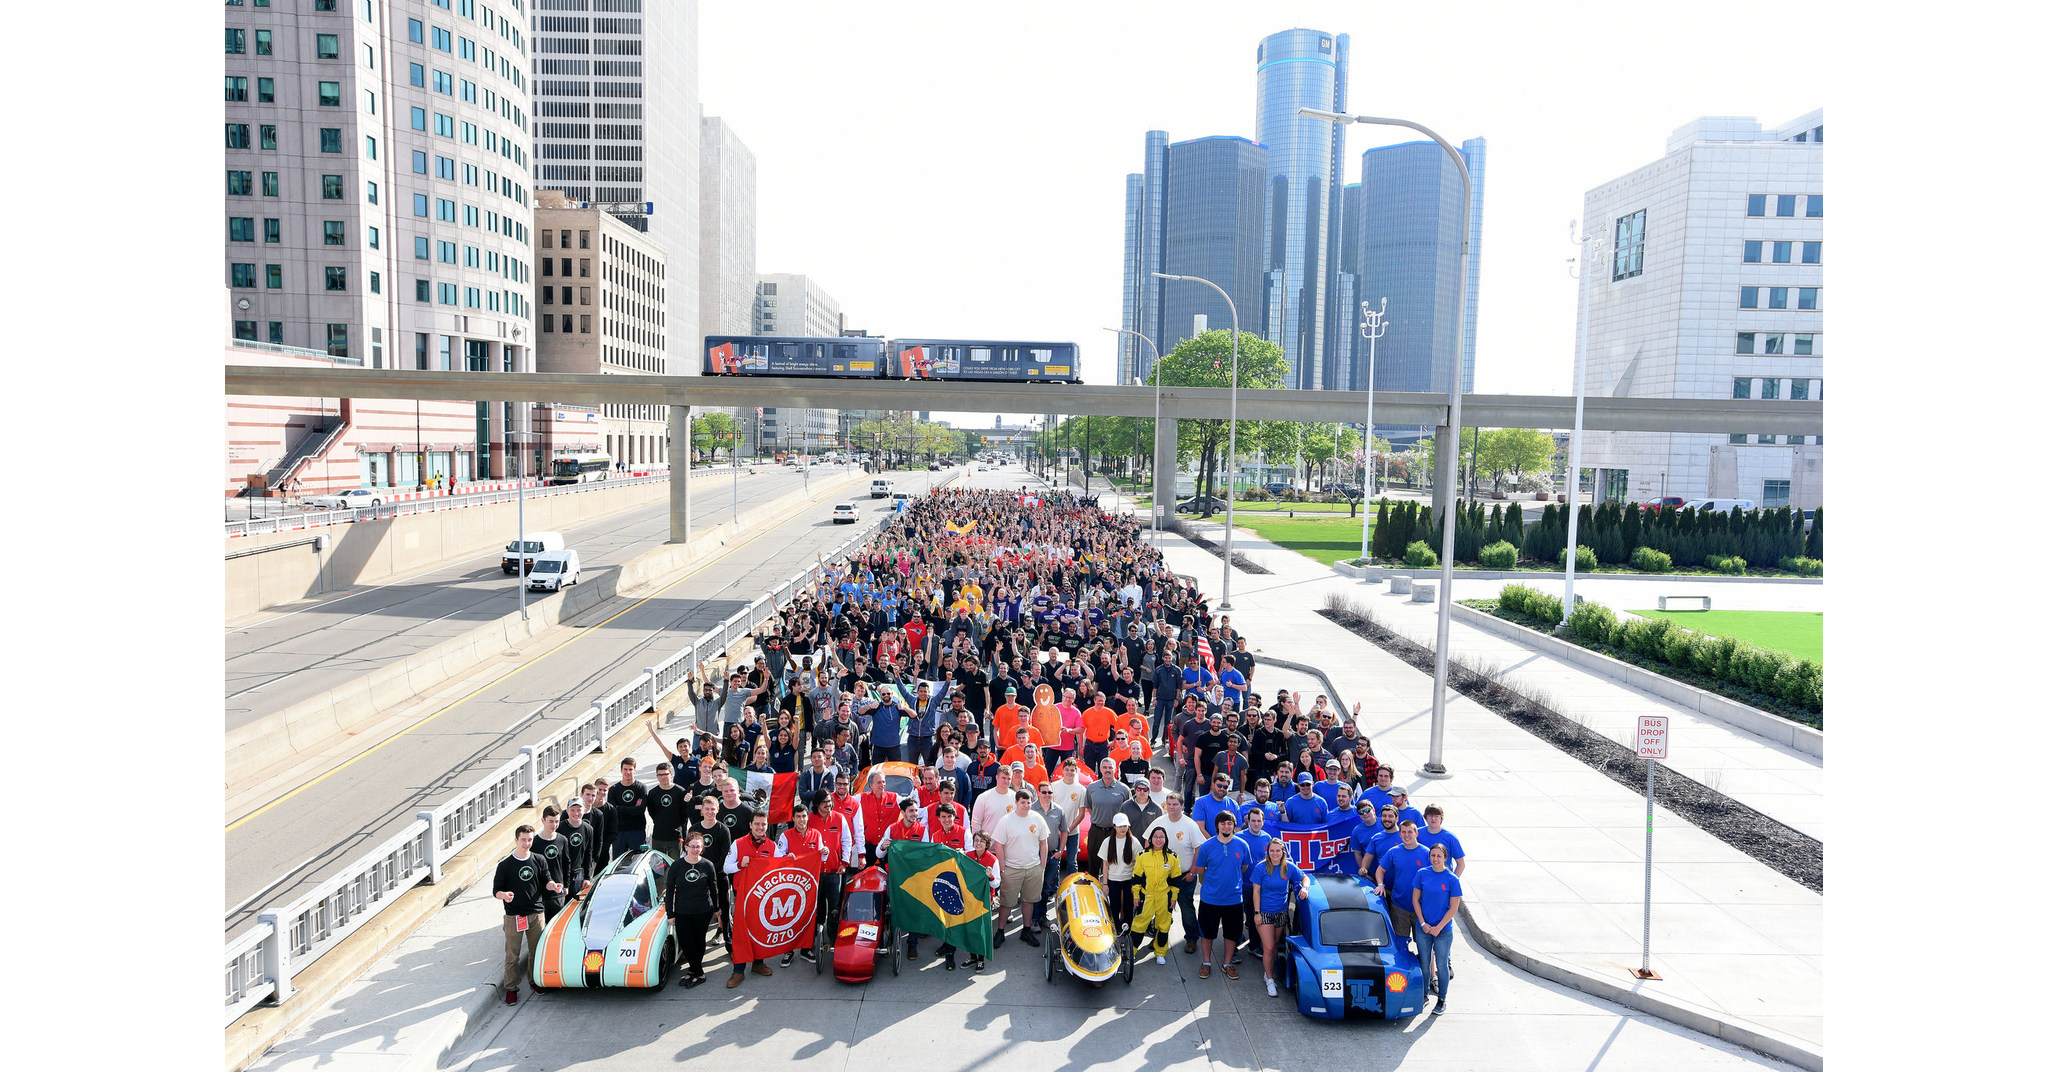 Universit laval earns 4th win at annual shell eco marathon americas event